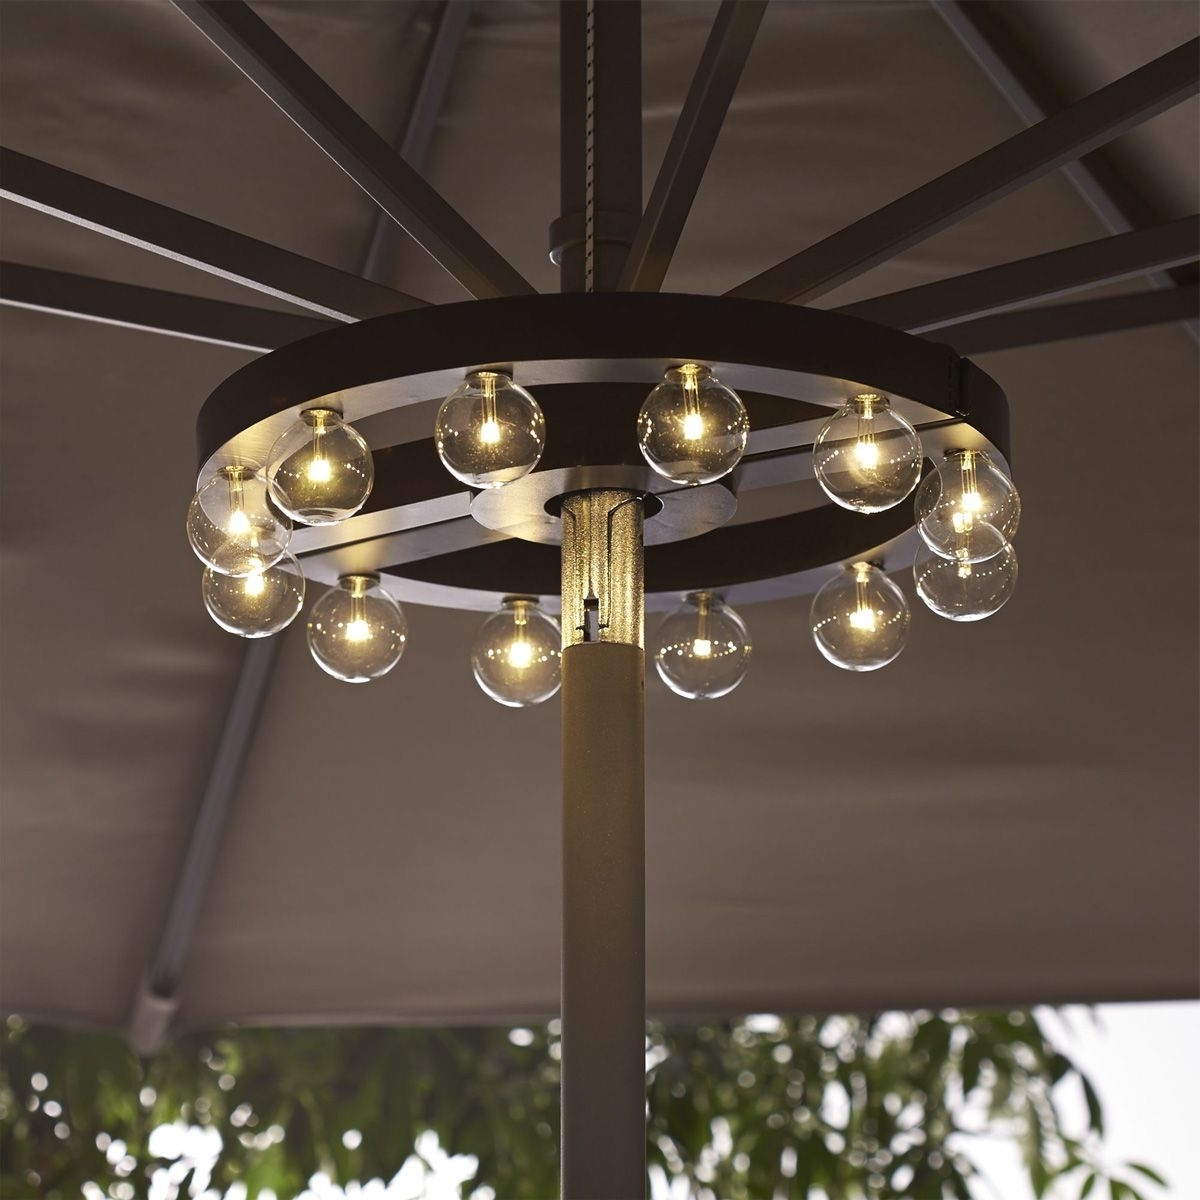 Patio Umbrellas With Solar Lights Inside Well Liked Solar Lights For Patio Umbrellas • Patio Ideas (View 2 of 20)